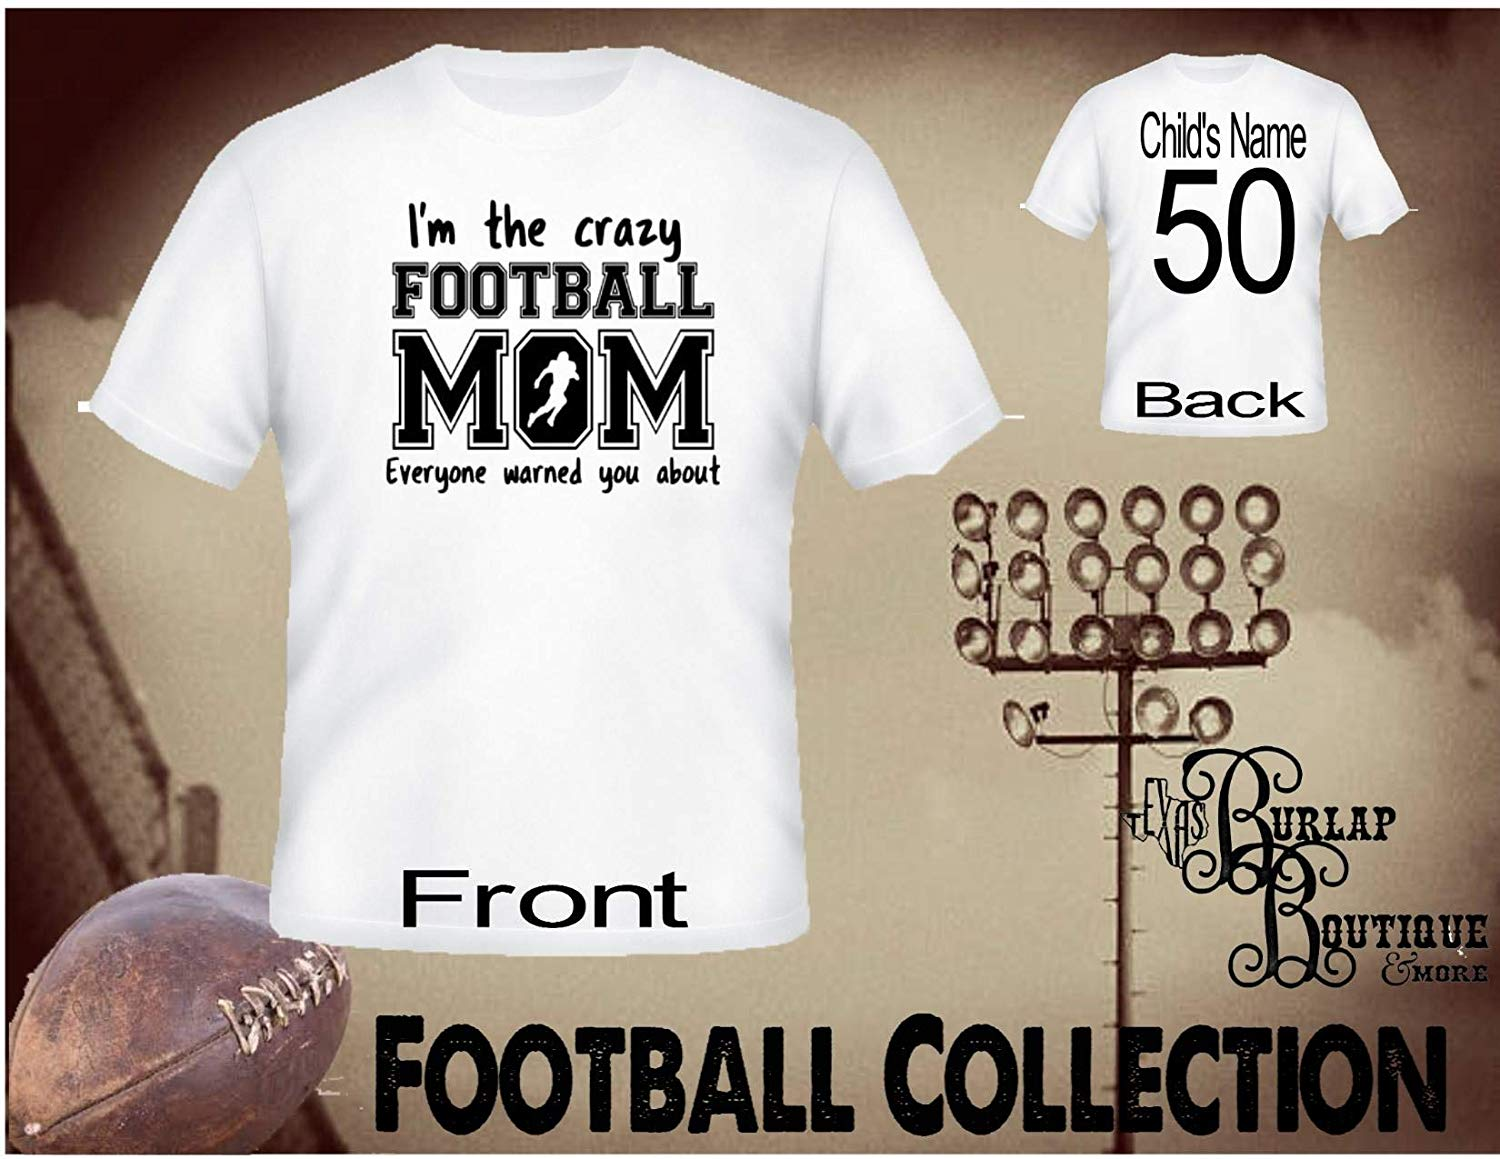 Handmade Personalized Football Shirt, Crazy Football MOM everyone warned you about, Tee, T - Shirt, Tshirt, Football Quotes, Kids, Girls, Adult, Sizes XS - 3XL Several colors